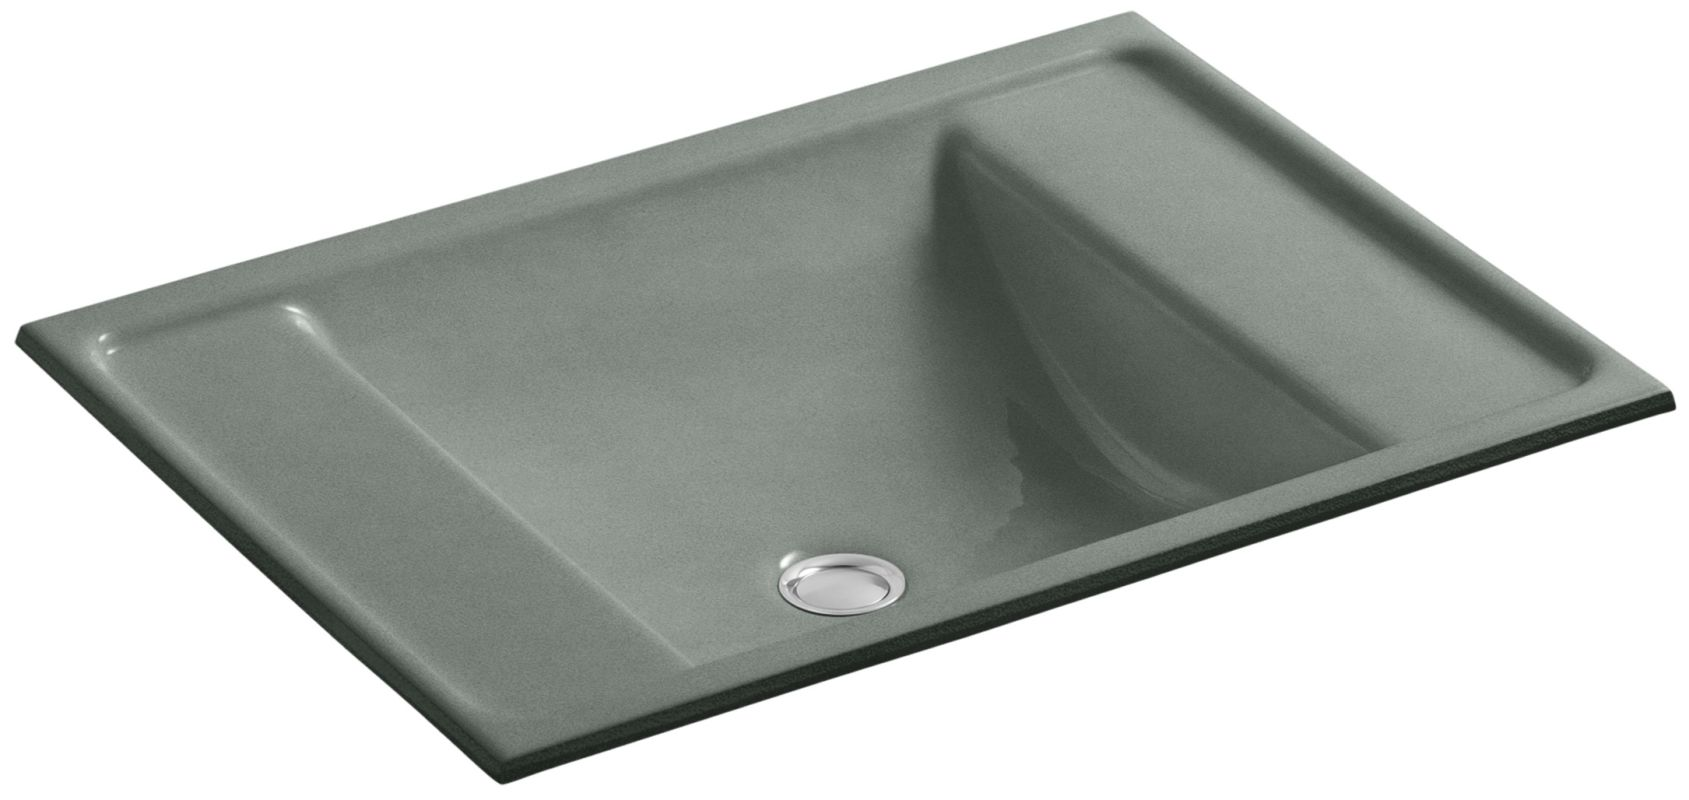 ... Sink and Pedestal Sink Only Do You Have The Matching Pedestal For This